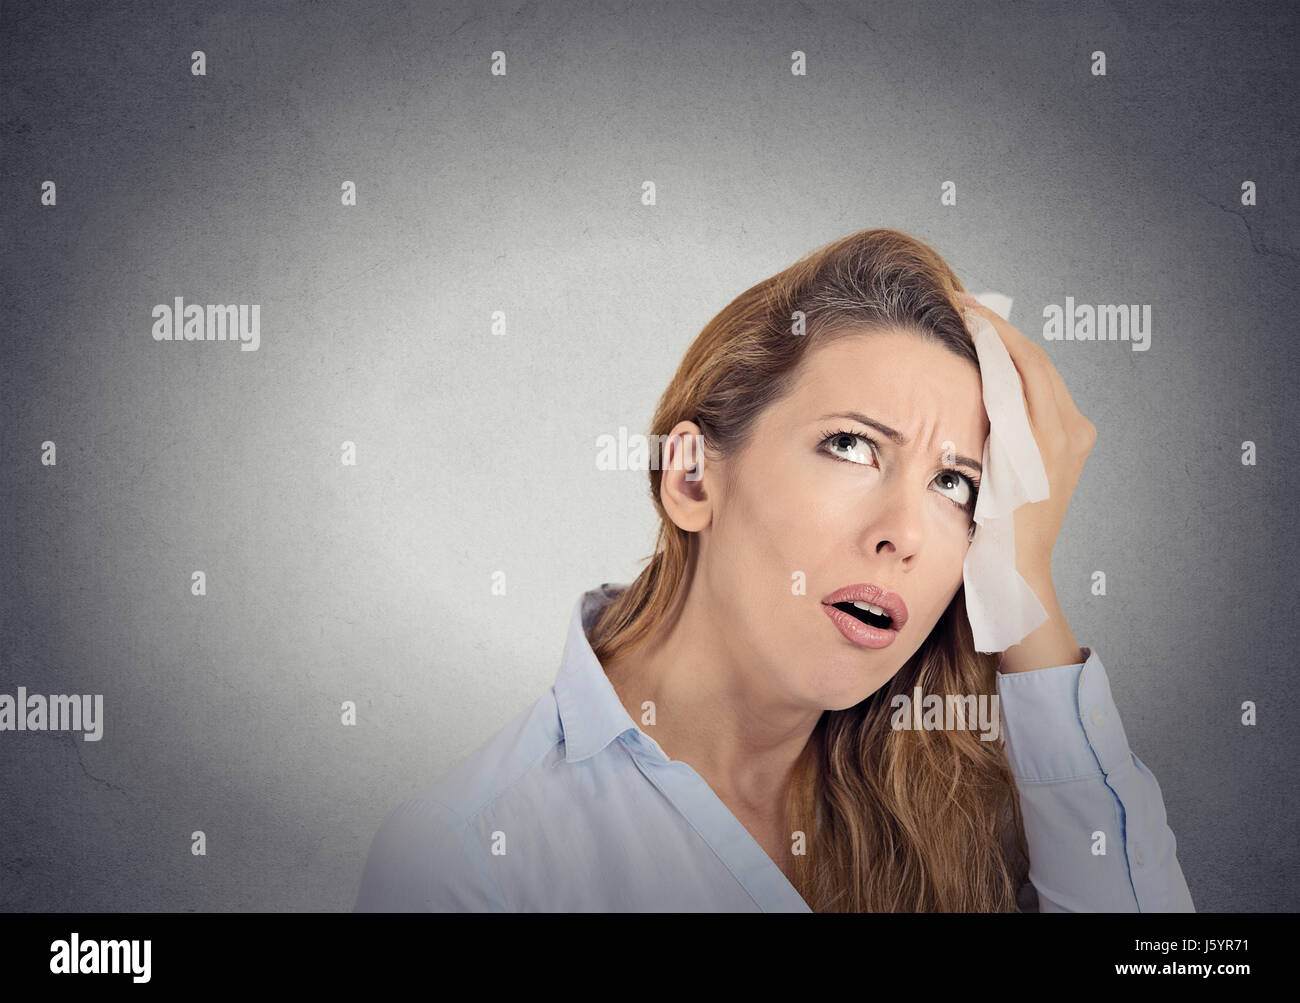 tired worried woman wipes sweat on her face - Stock Image